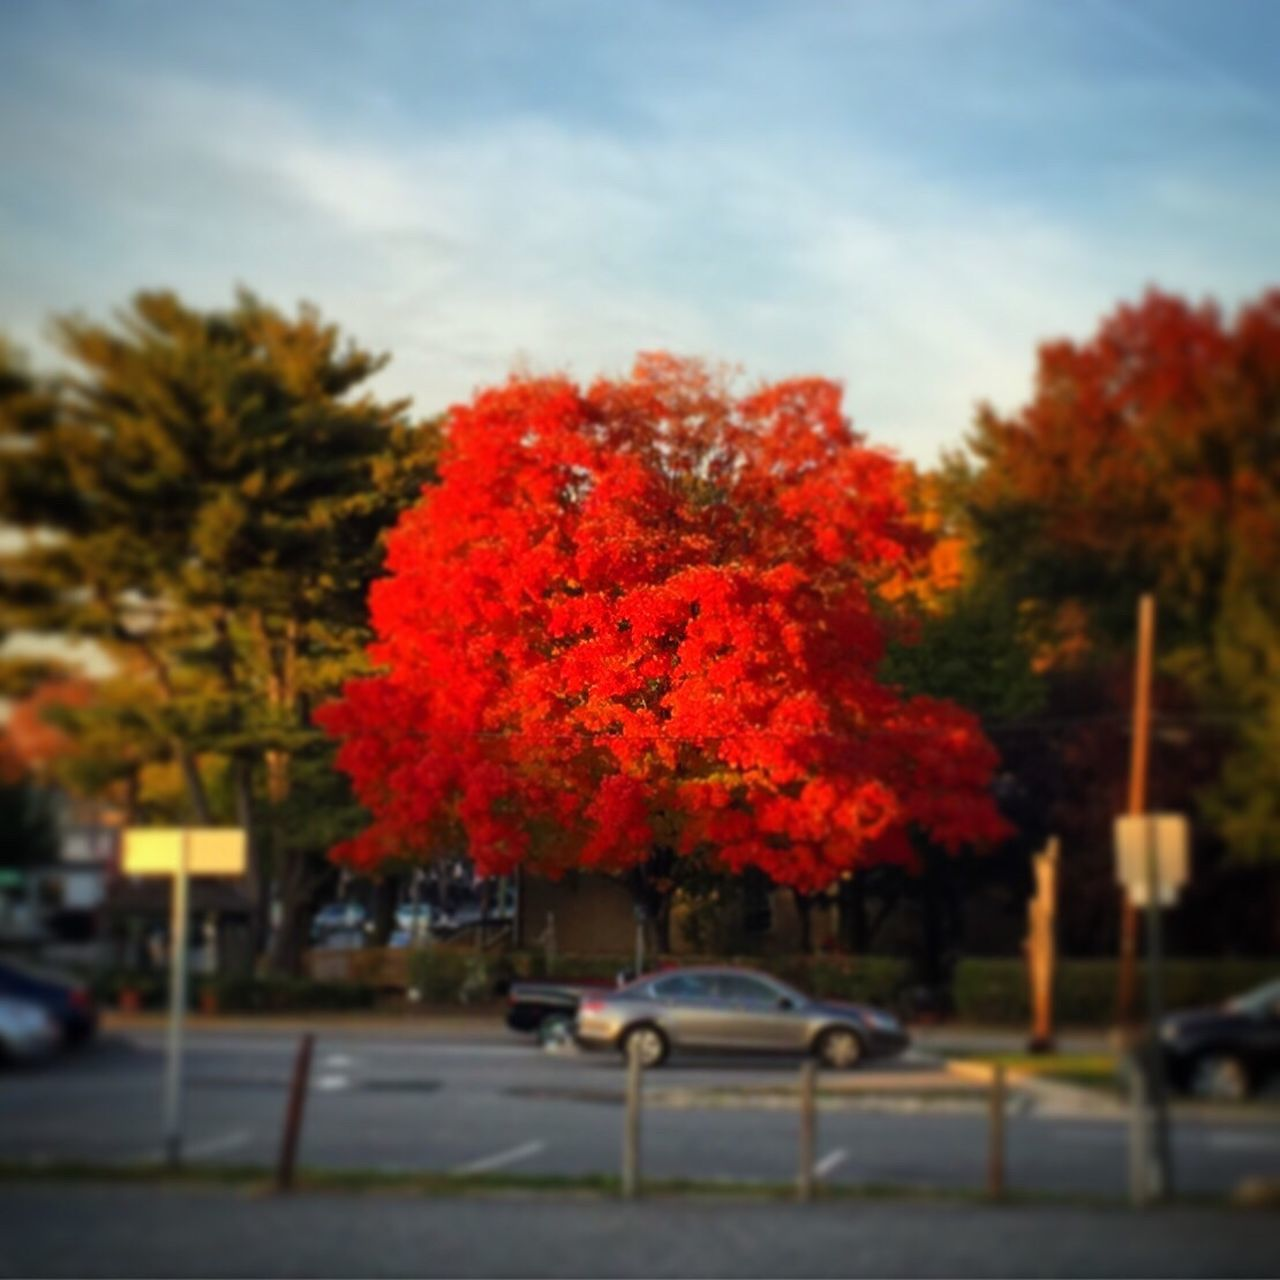 tree, car, change, autumn, transportation, growth, day, outdoors, land vehicle, nature, no people, red, road, leaf, sky, beauty in nature, close-up